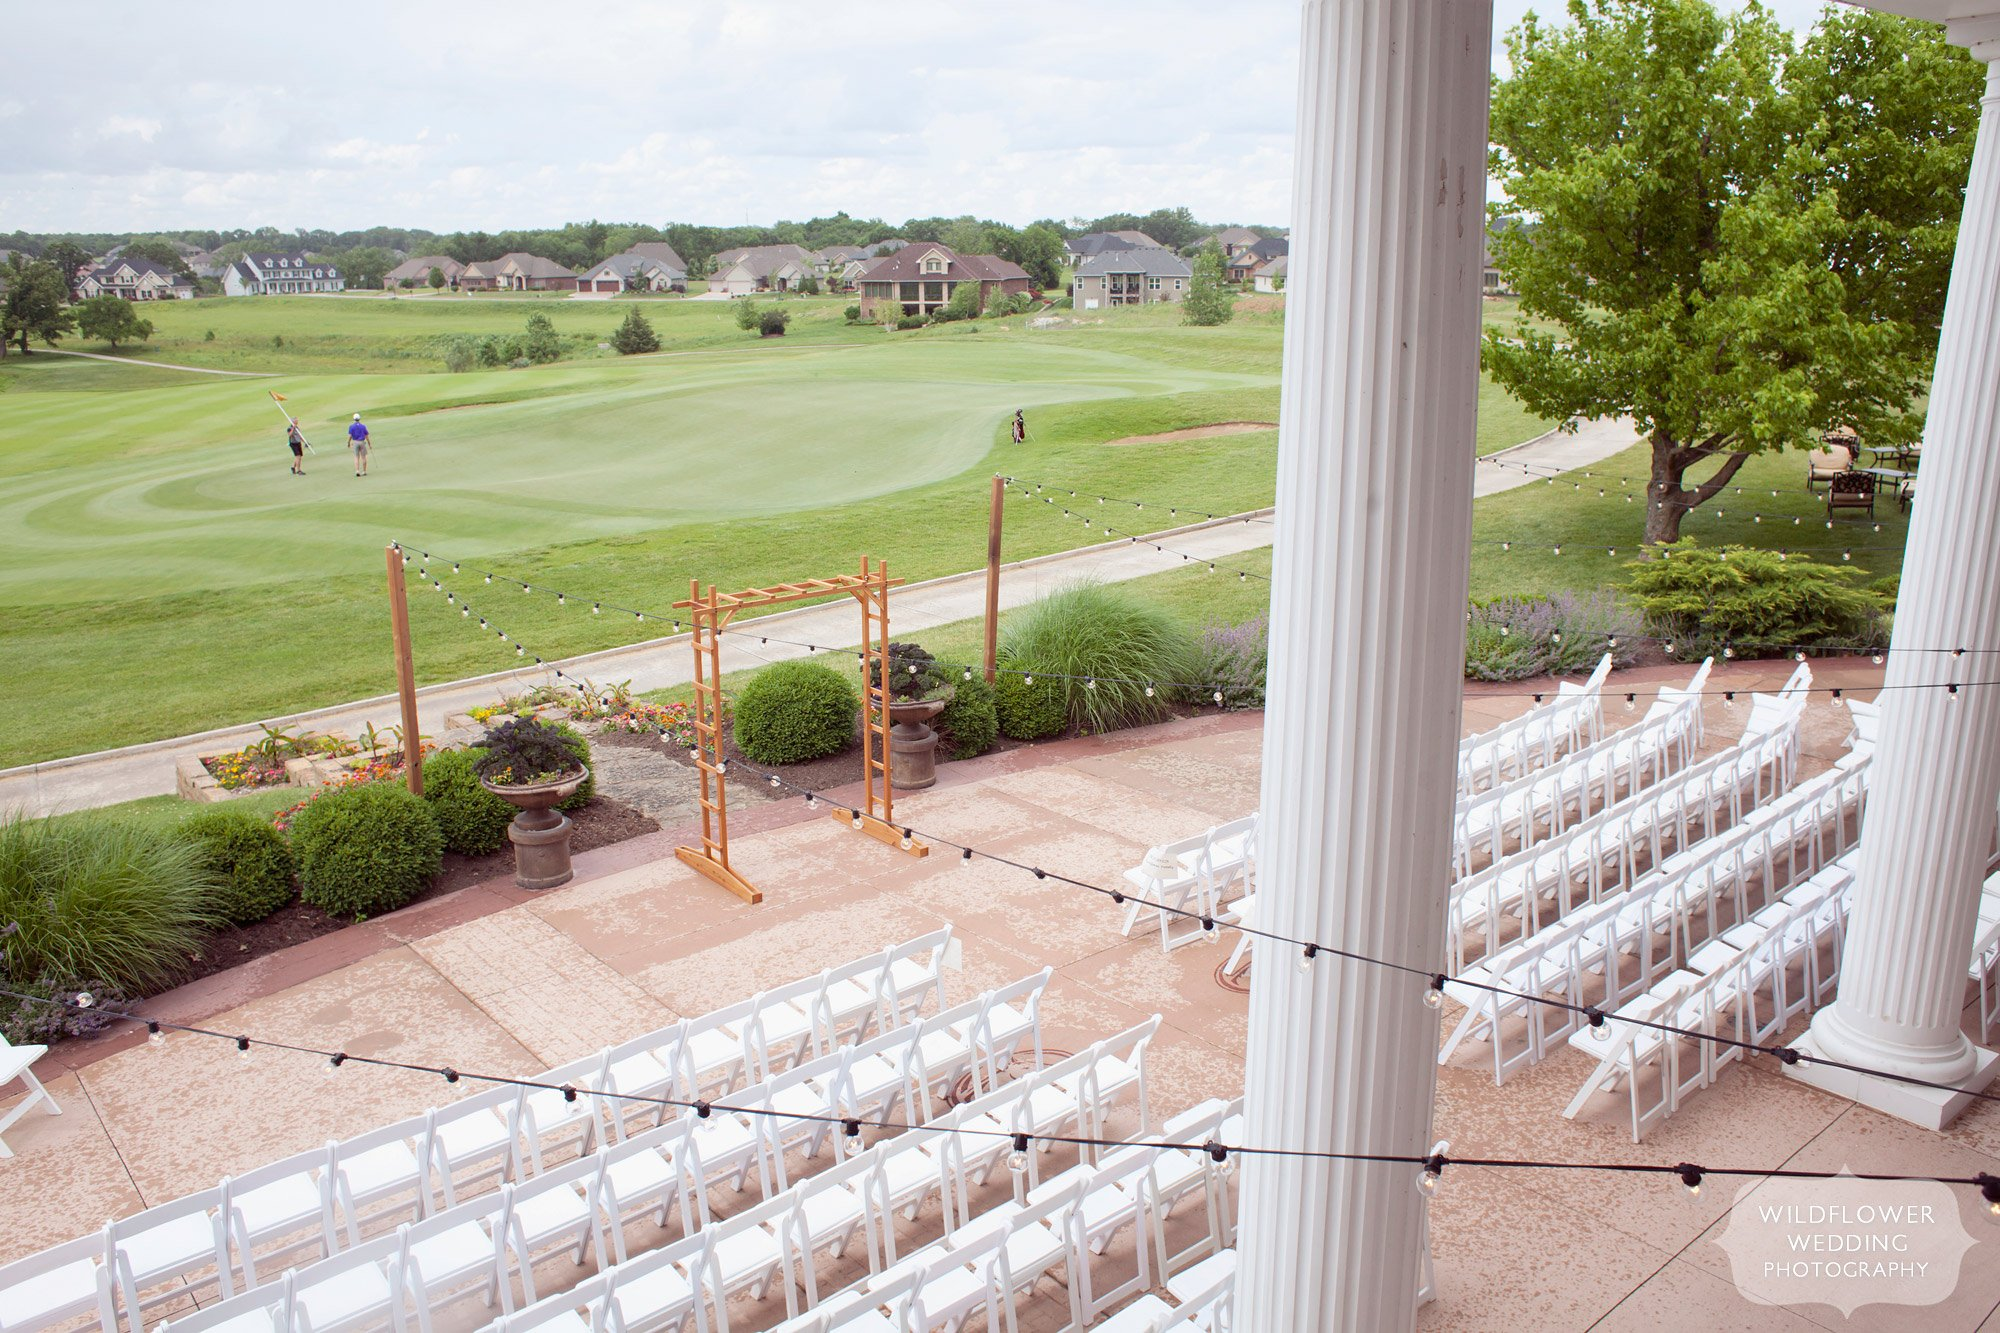 View of the outdoor patio for a wedding ceremony at the Old Hawthorne Country Club venue in Columbia, MO.